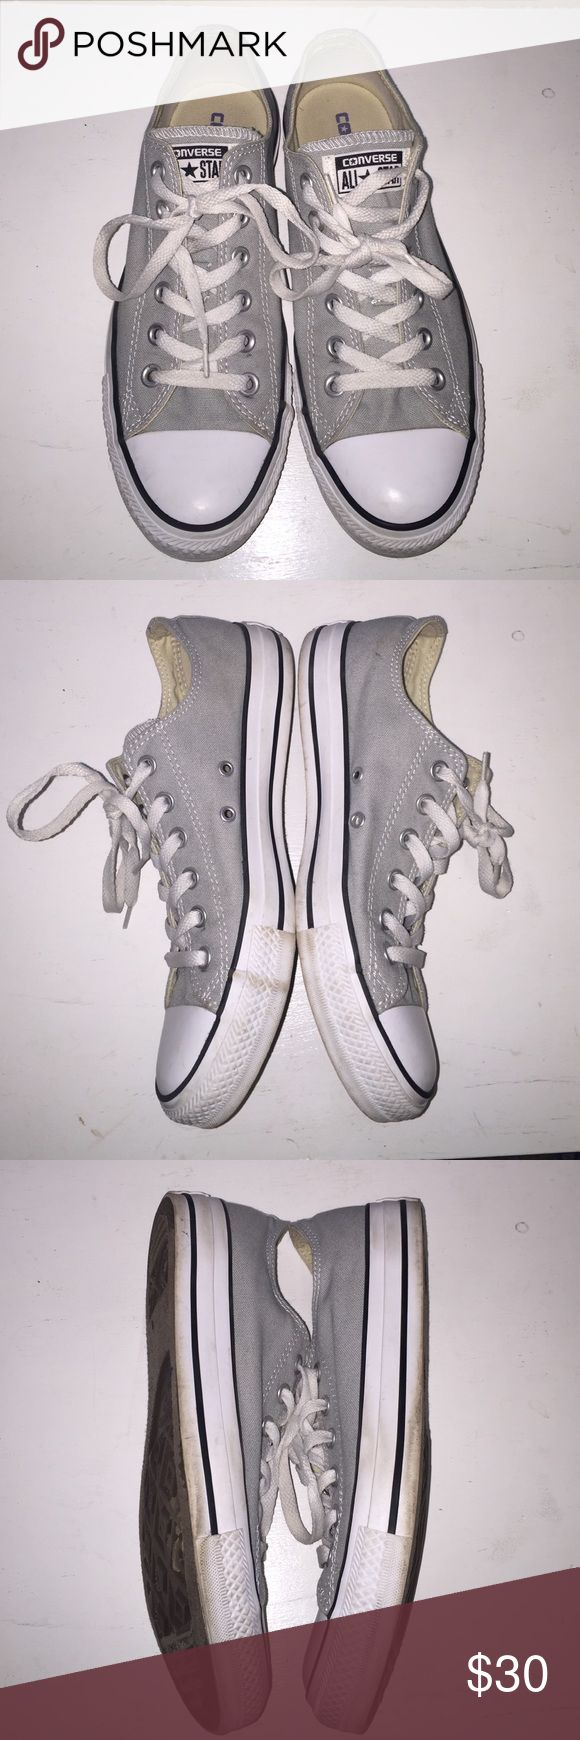 Light Gray Converse Selling these gray converse, used but still have some life to them. Feel free to ask any questions Converse Shoes